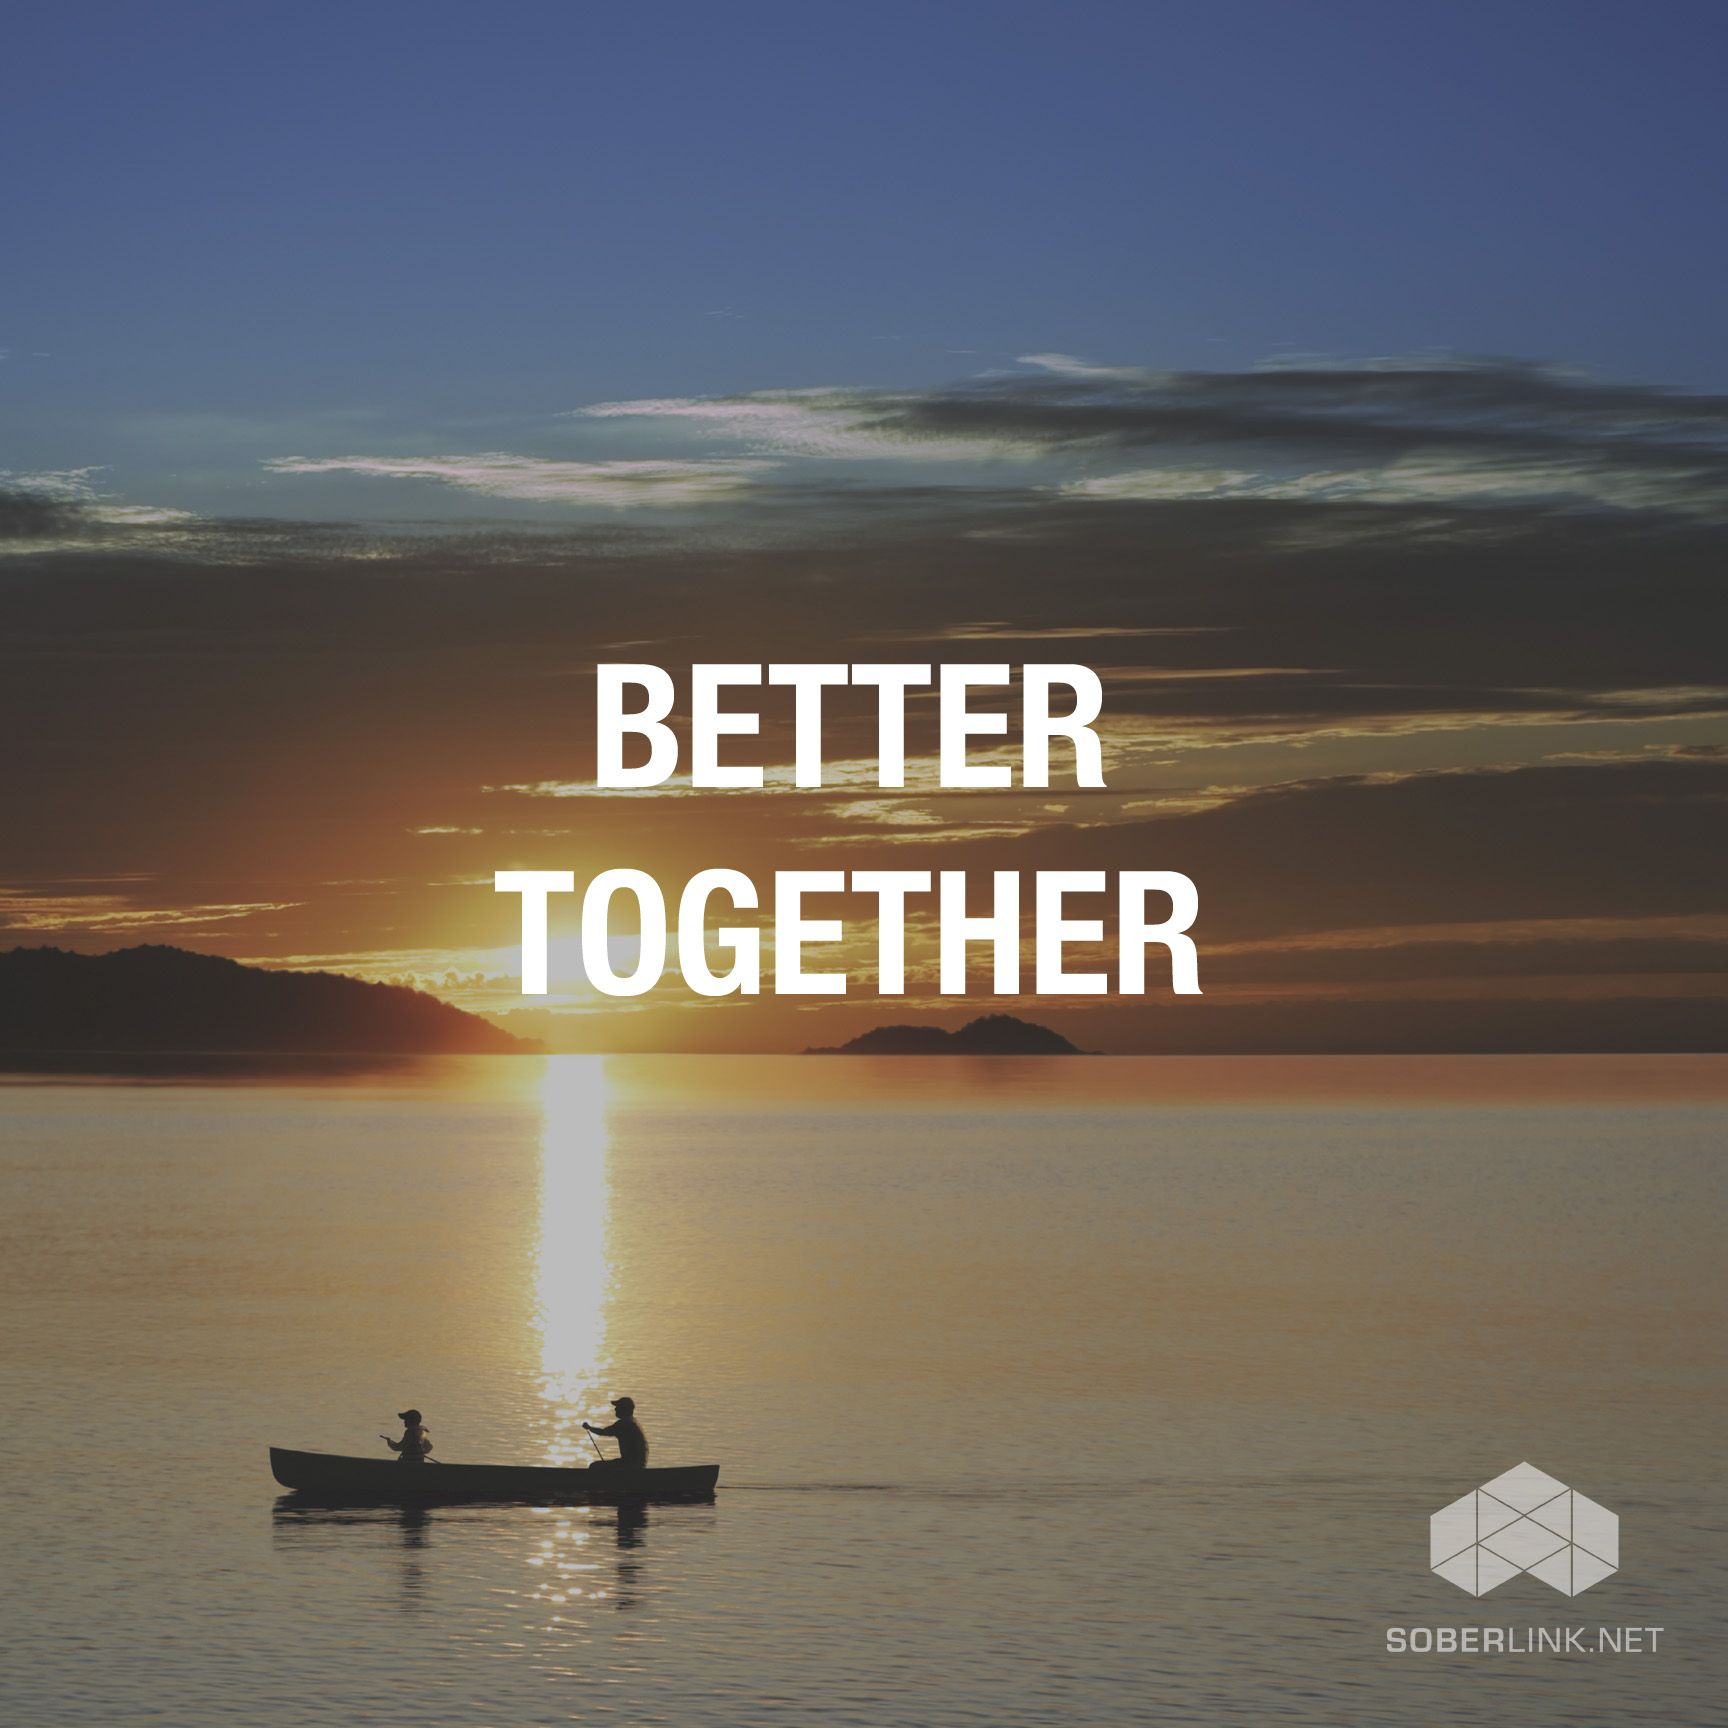 @Soberlink's blog this week is about recovering together, and not going at it alone. #Recovery #Sober